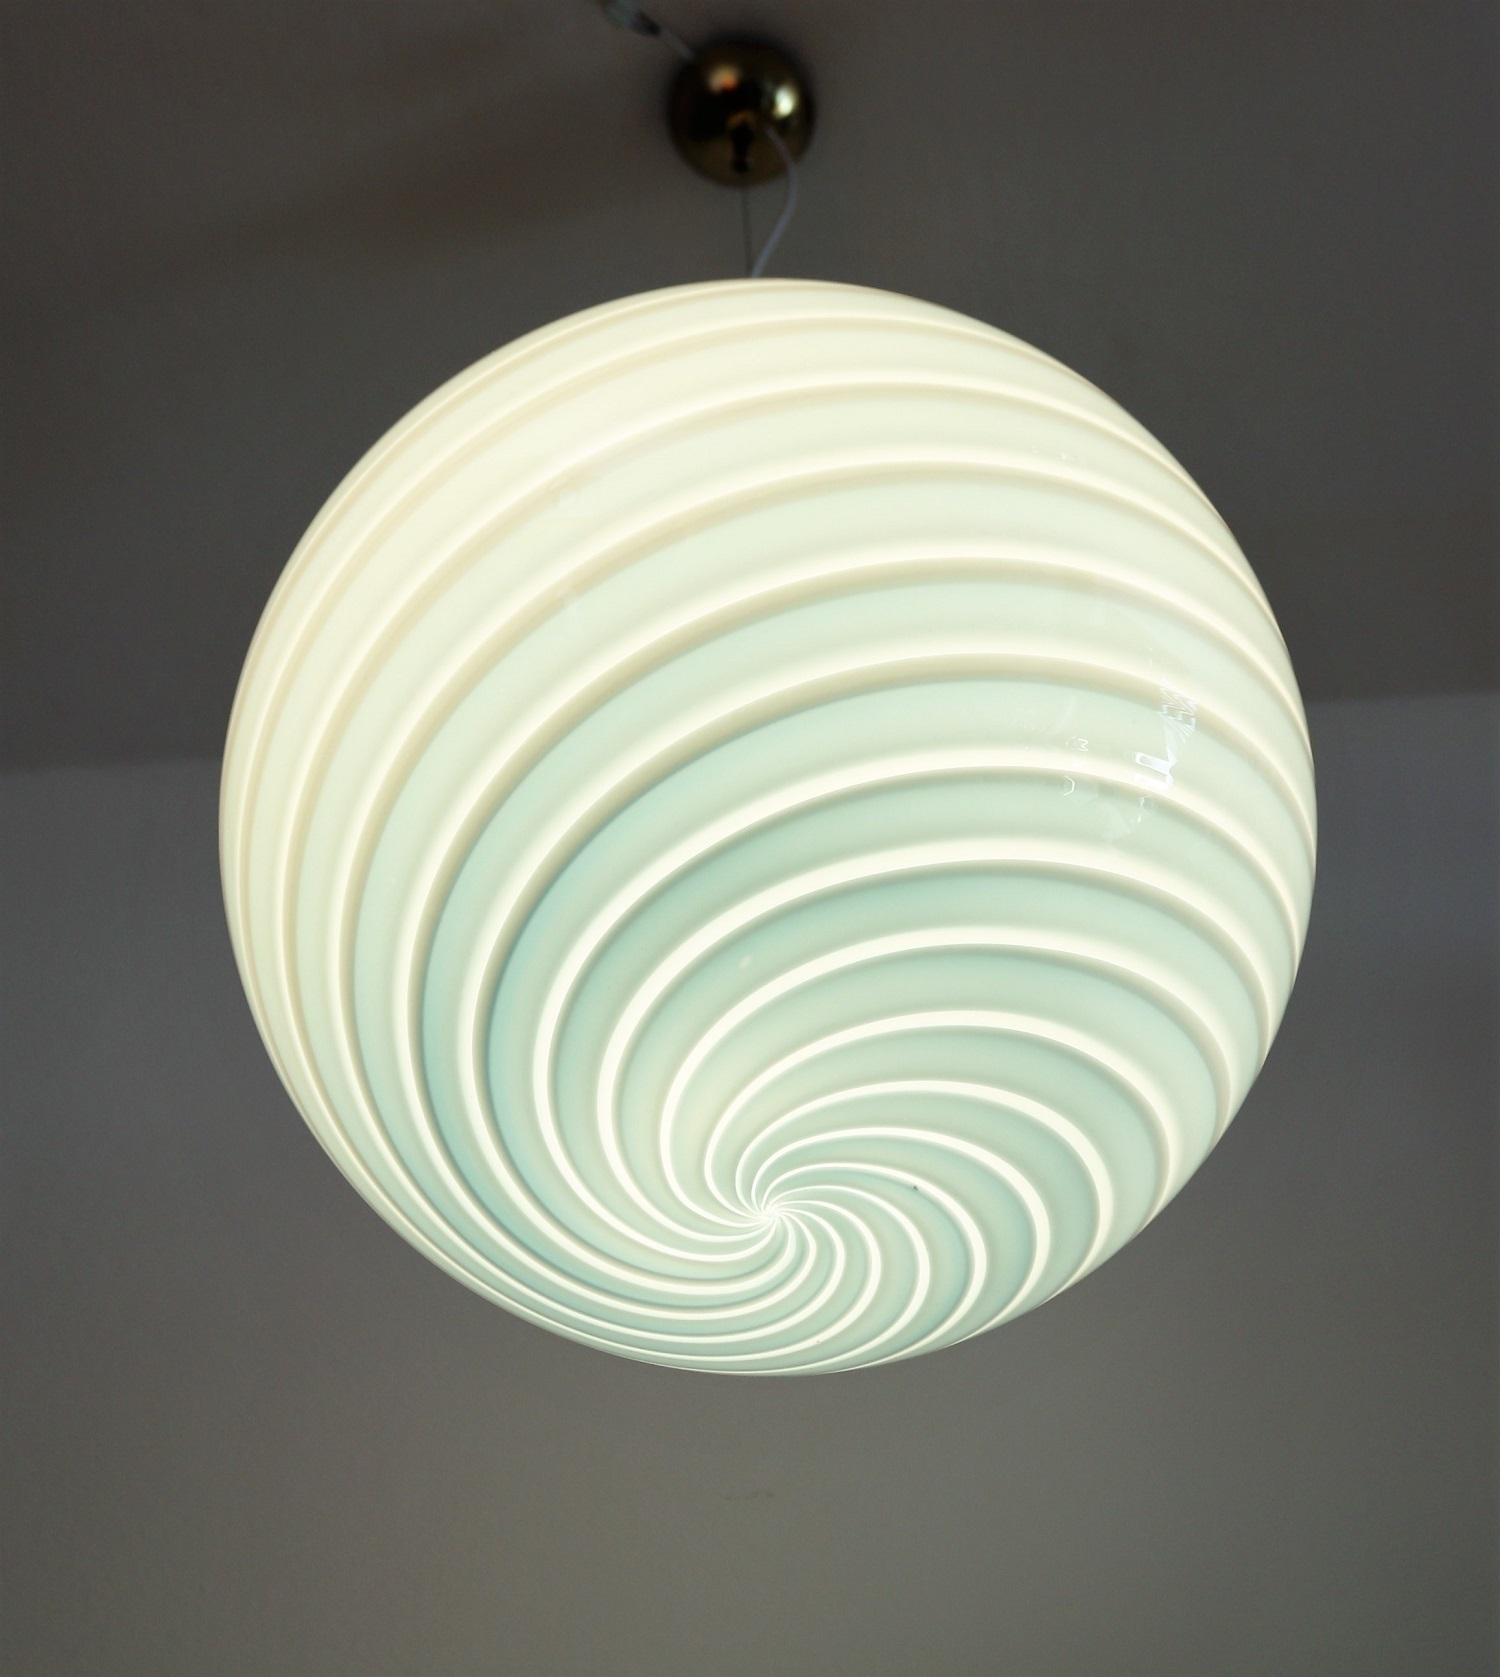 Italian Murano Vintage Pendant Light With Blue Swirl Glass Globe 1970s Vinterior